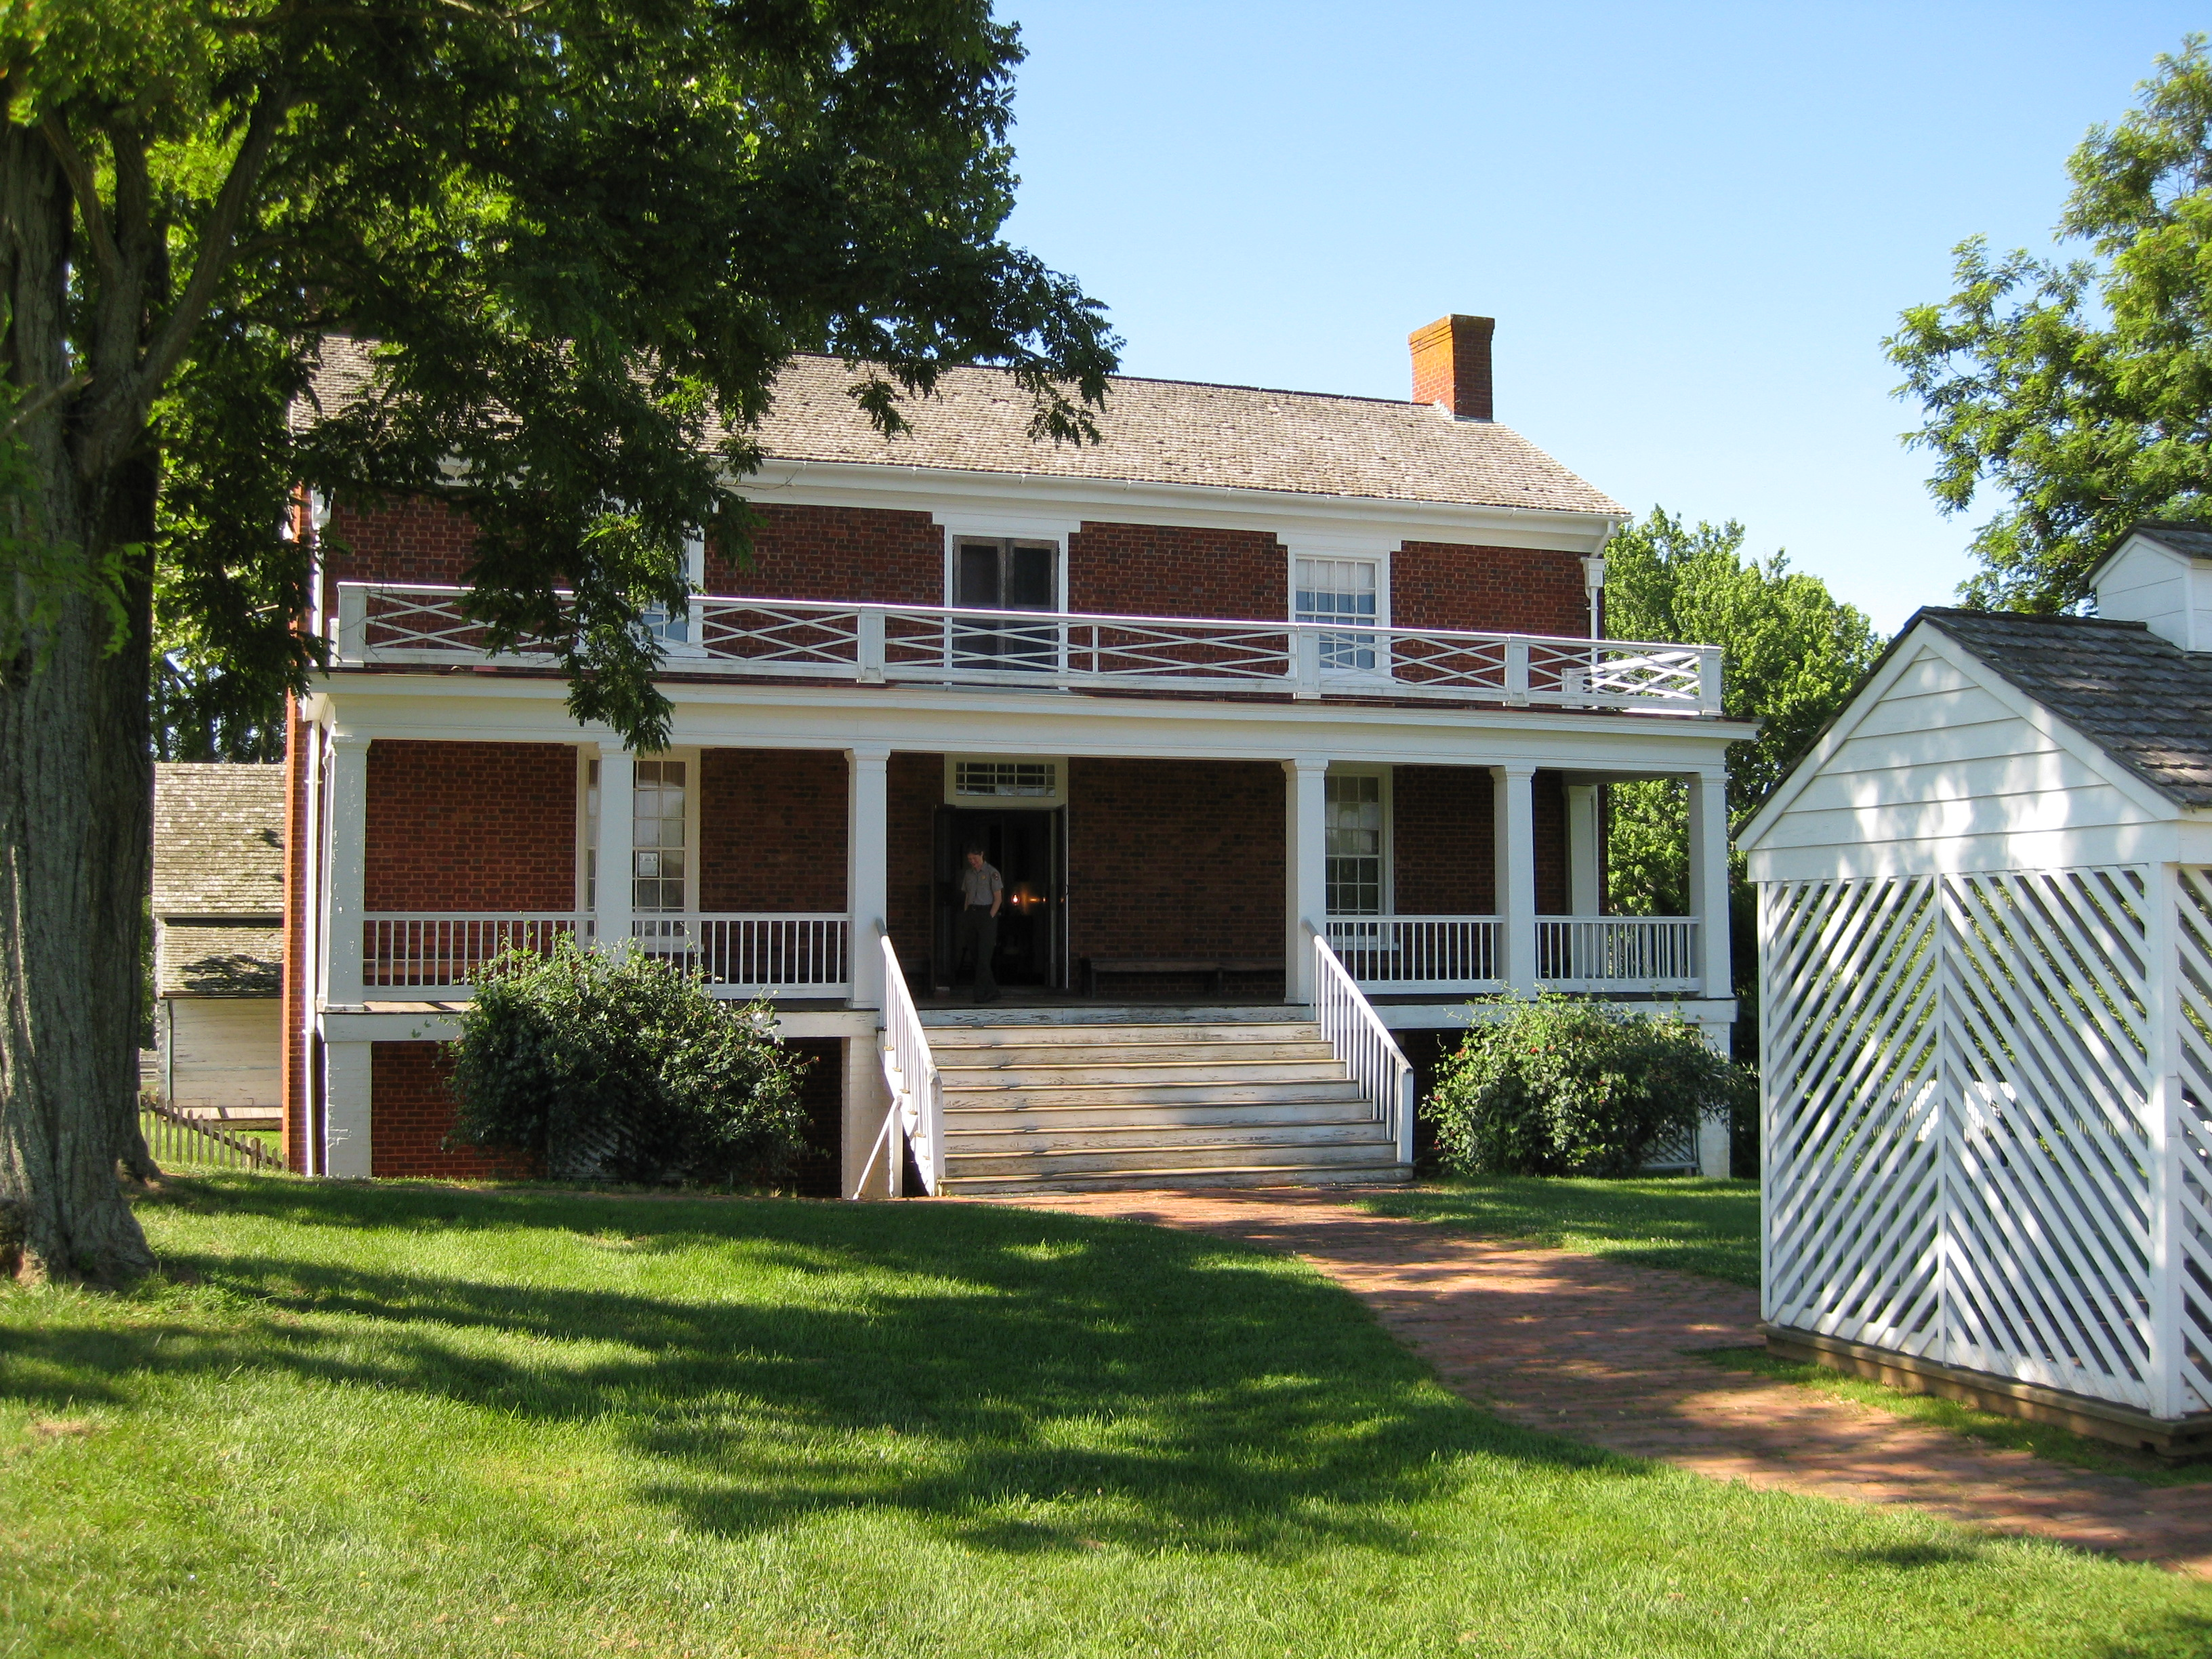 Lovely Historic Structures At Appomattox Court House